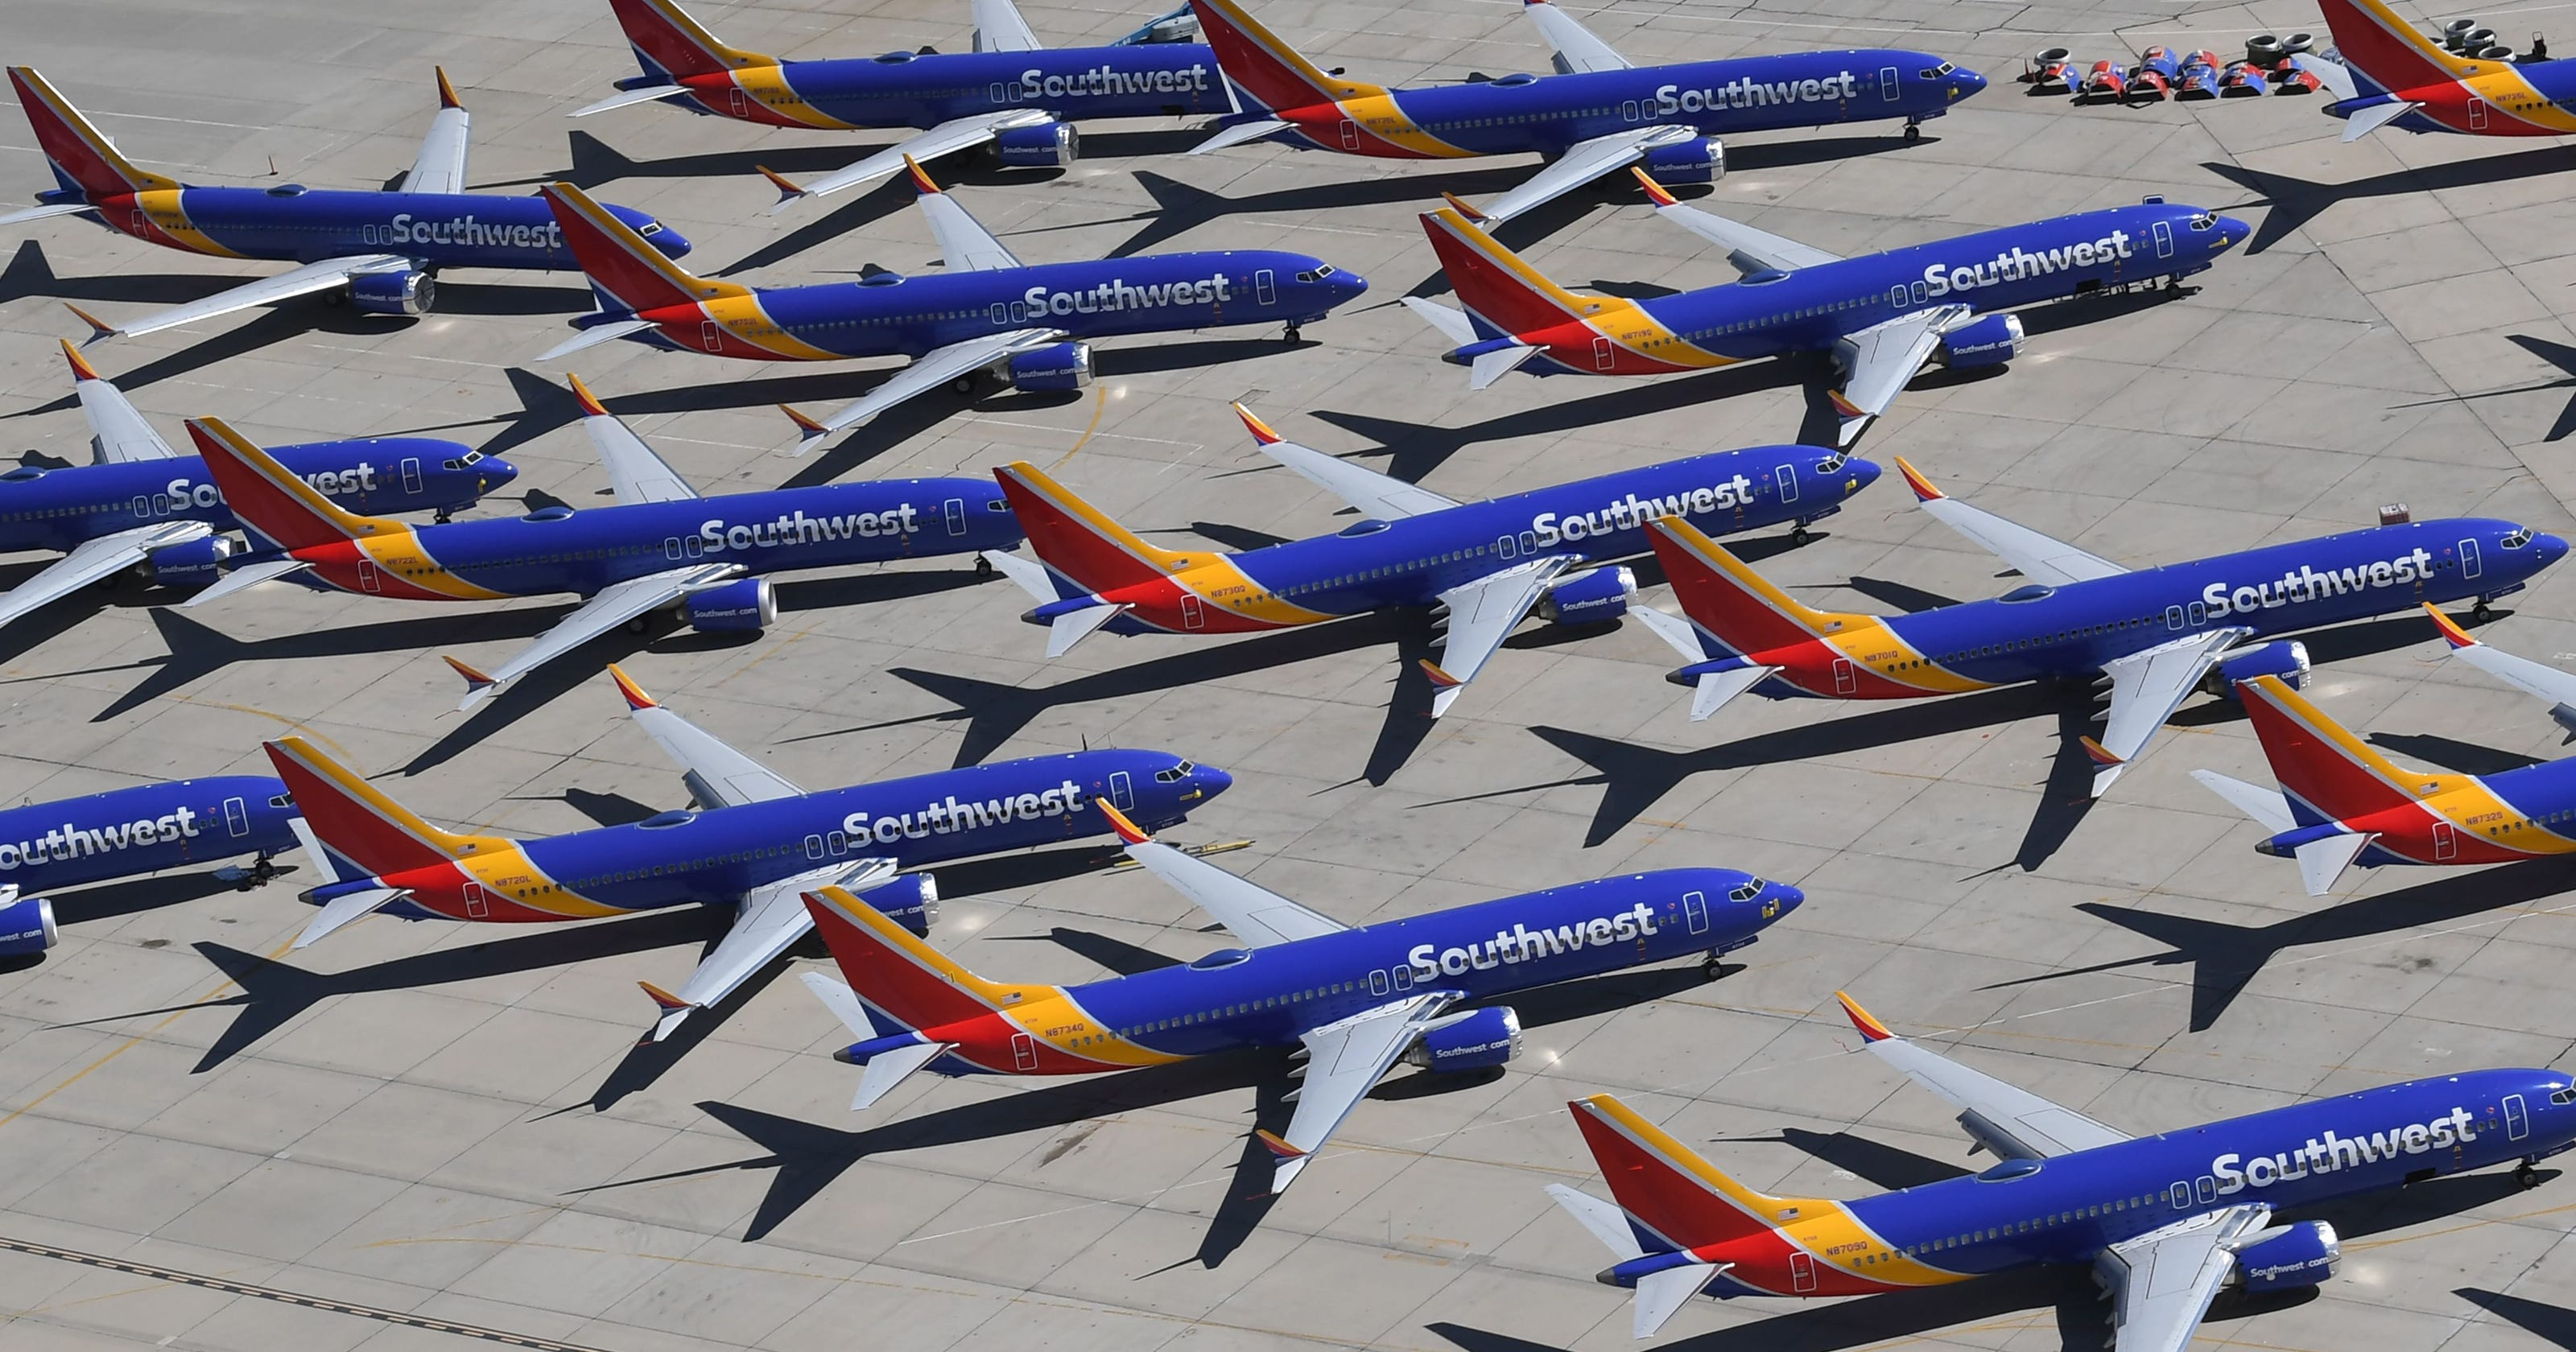 Flying Southwest or American this summer? Check reservations for new Max 8 cancellations